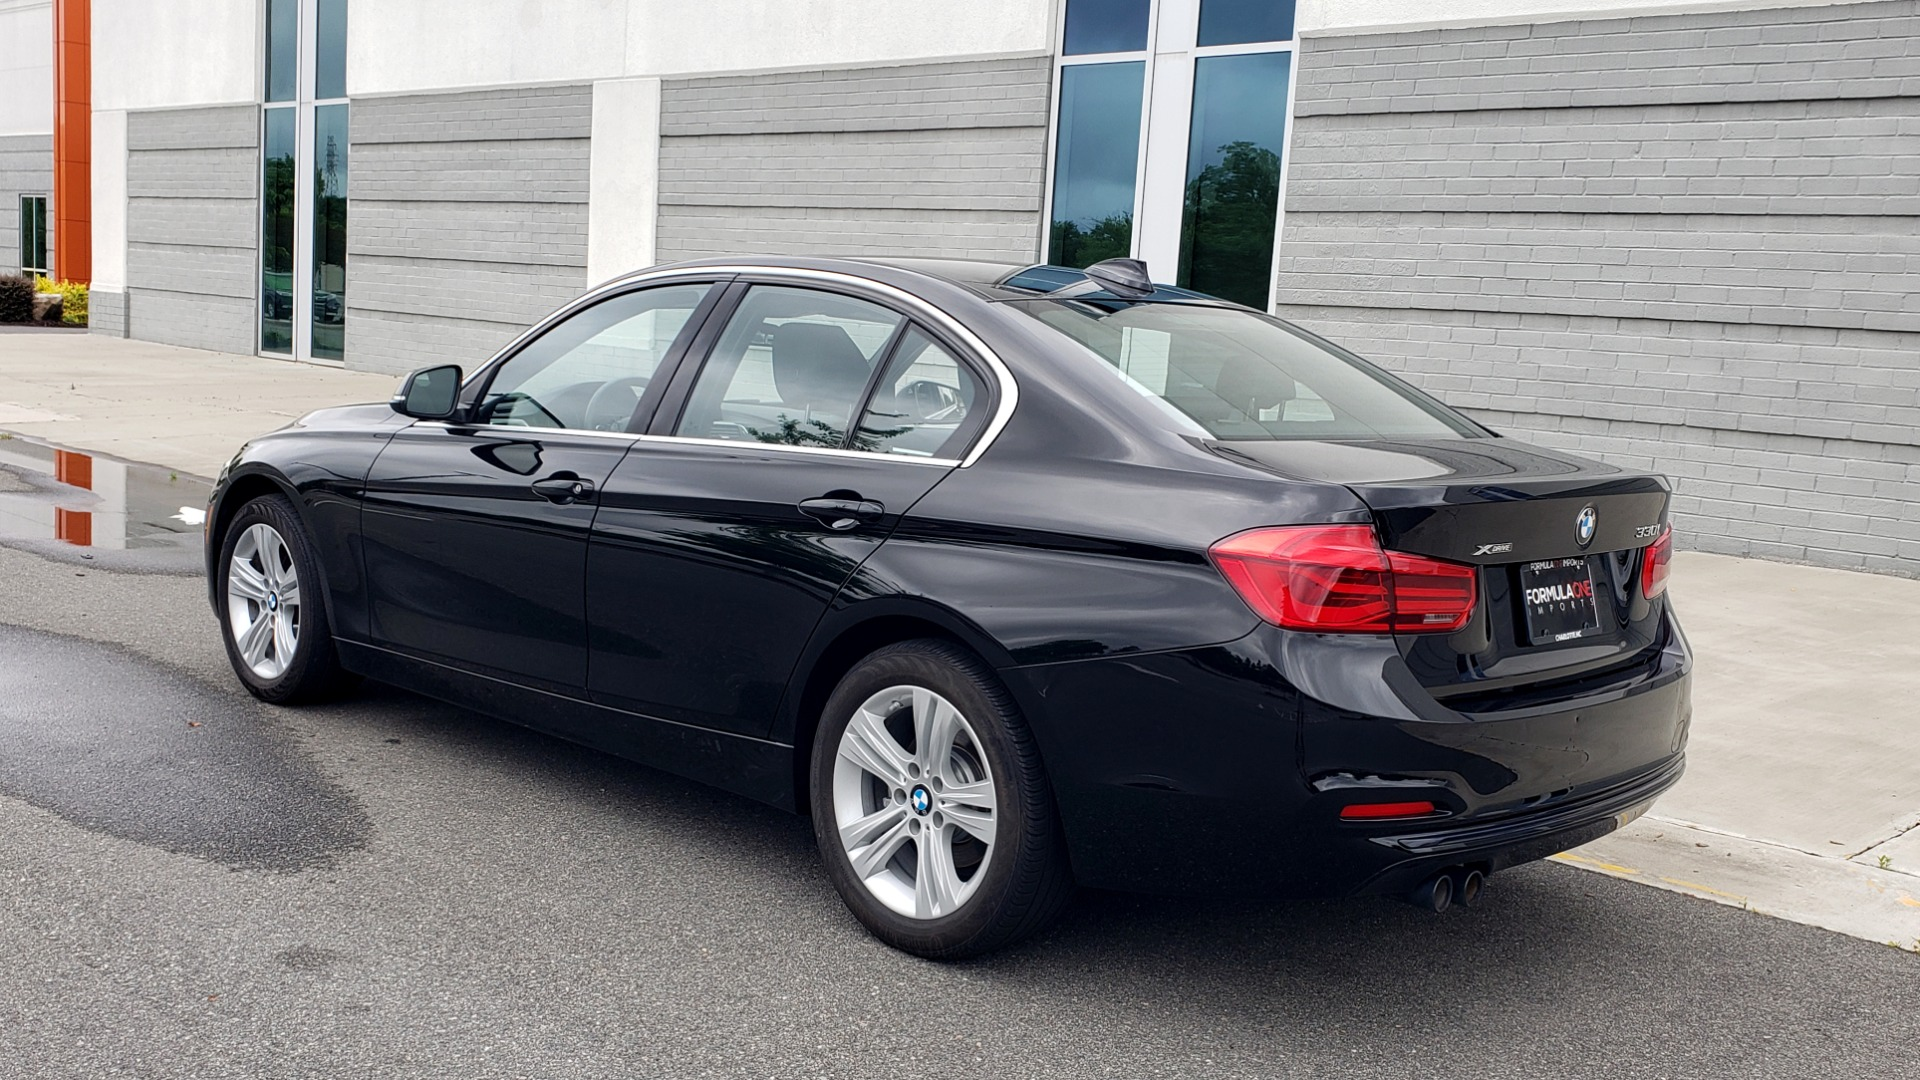 Used 2018 BMW 3 SERIES 330IXDRIVE / CONV PKG / NAV / SUNROOF / HTD STS / REARVIEW for sale $26,552 at Formula Imports in Charlotte NC 28227 6